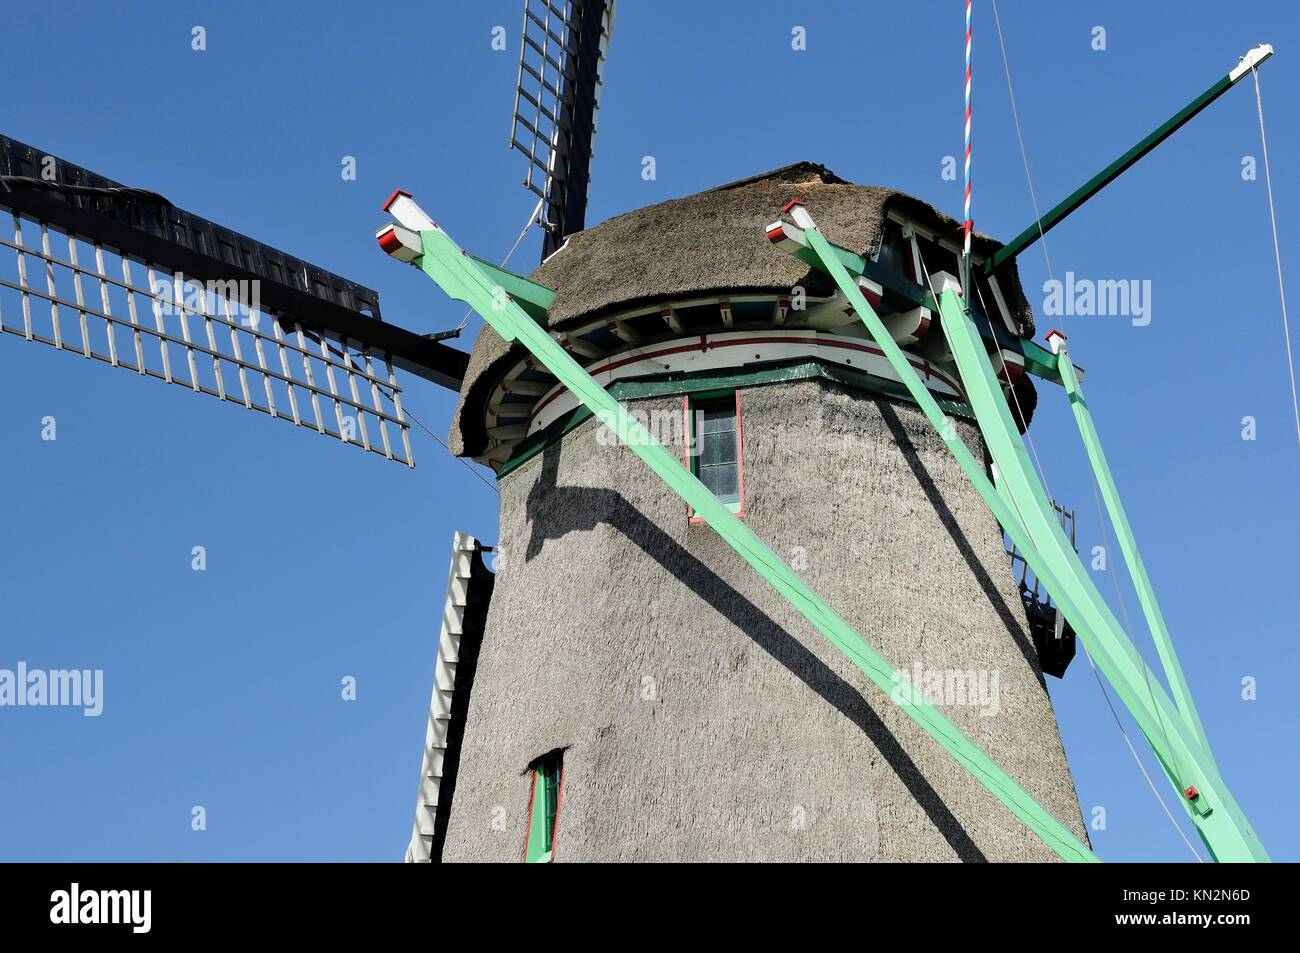 detail of mechanism that moves the vanes of traditional windmill at touristic location, shot in bright spring light - Stock Image